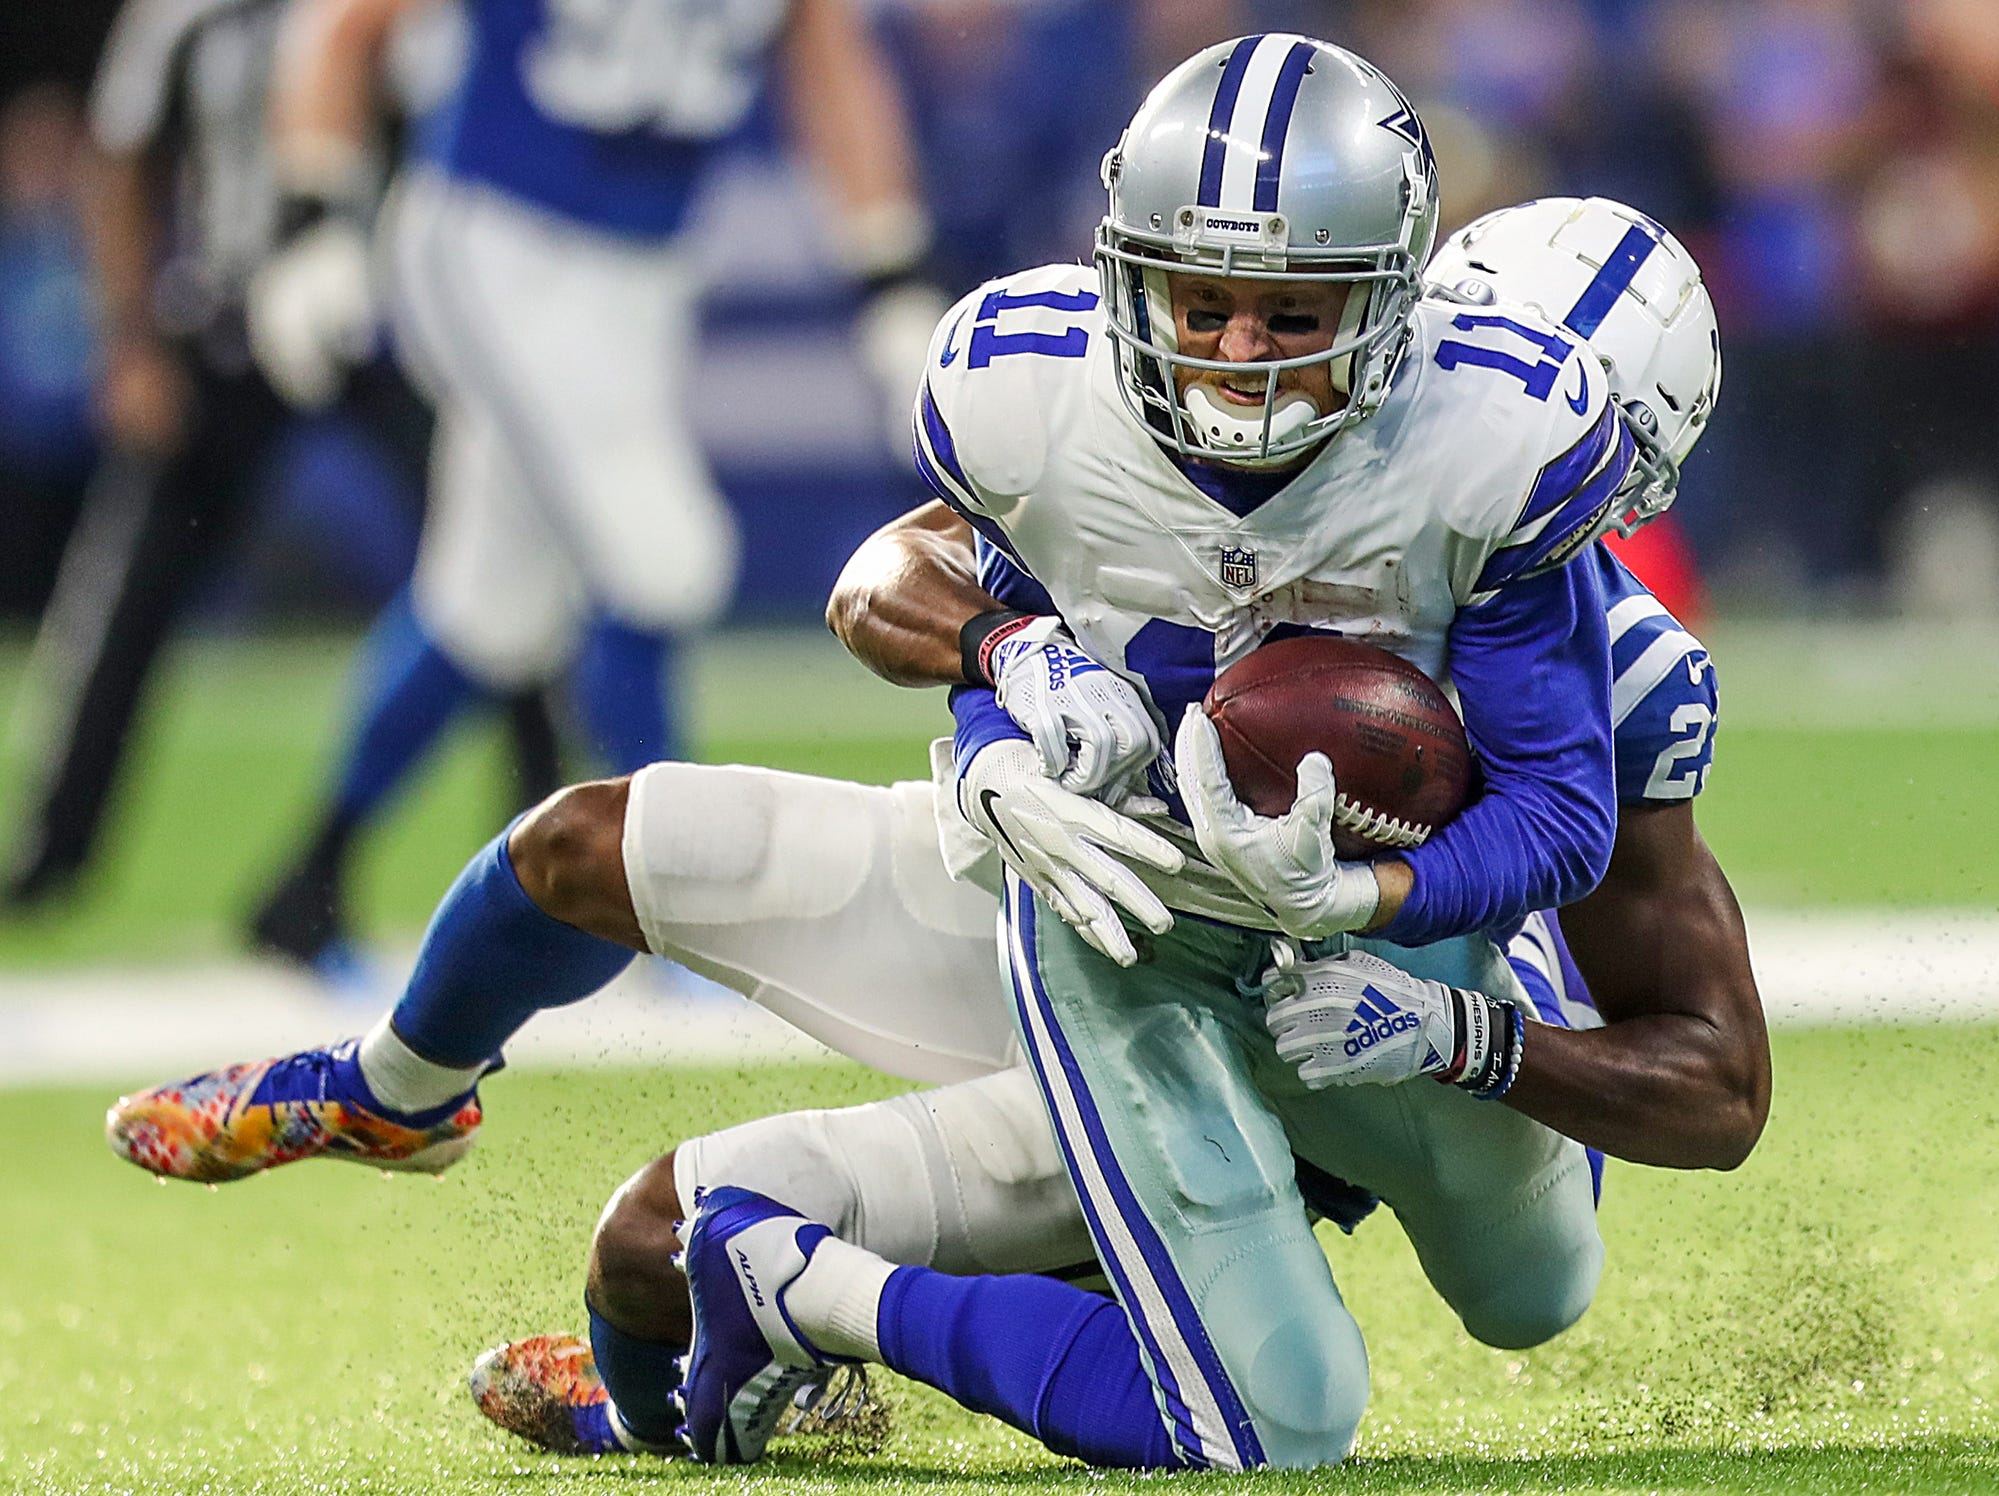 Indianapolis Colts cornerback Kenny Moore (23) tackles Dallas Cowboys wide receiver Cole Beasley (11) in the second half of the game at Lucas Oil Stadium in Indianapolis, Sunday, Dec. 16, 2018. The Colts won, 23-0.